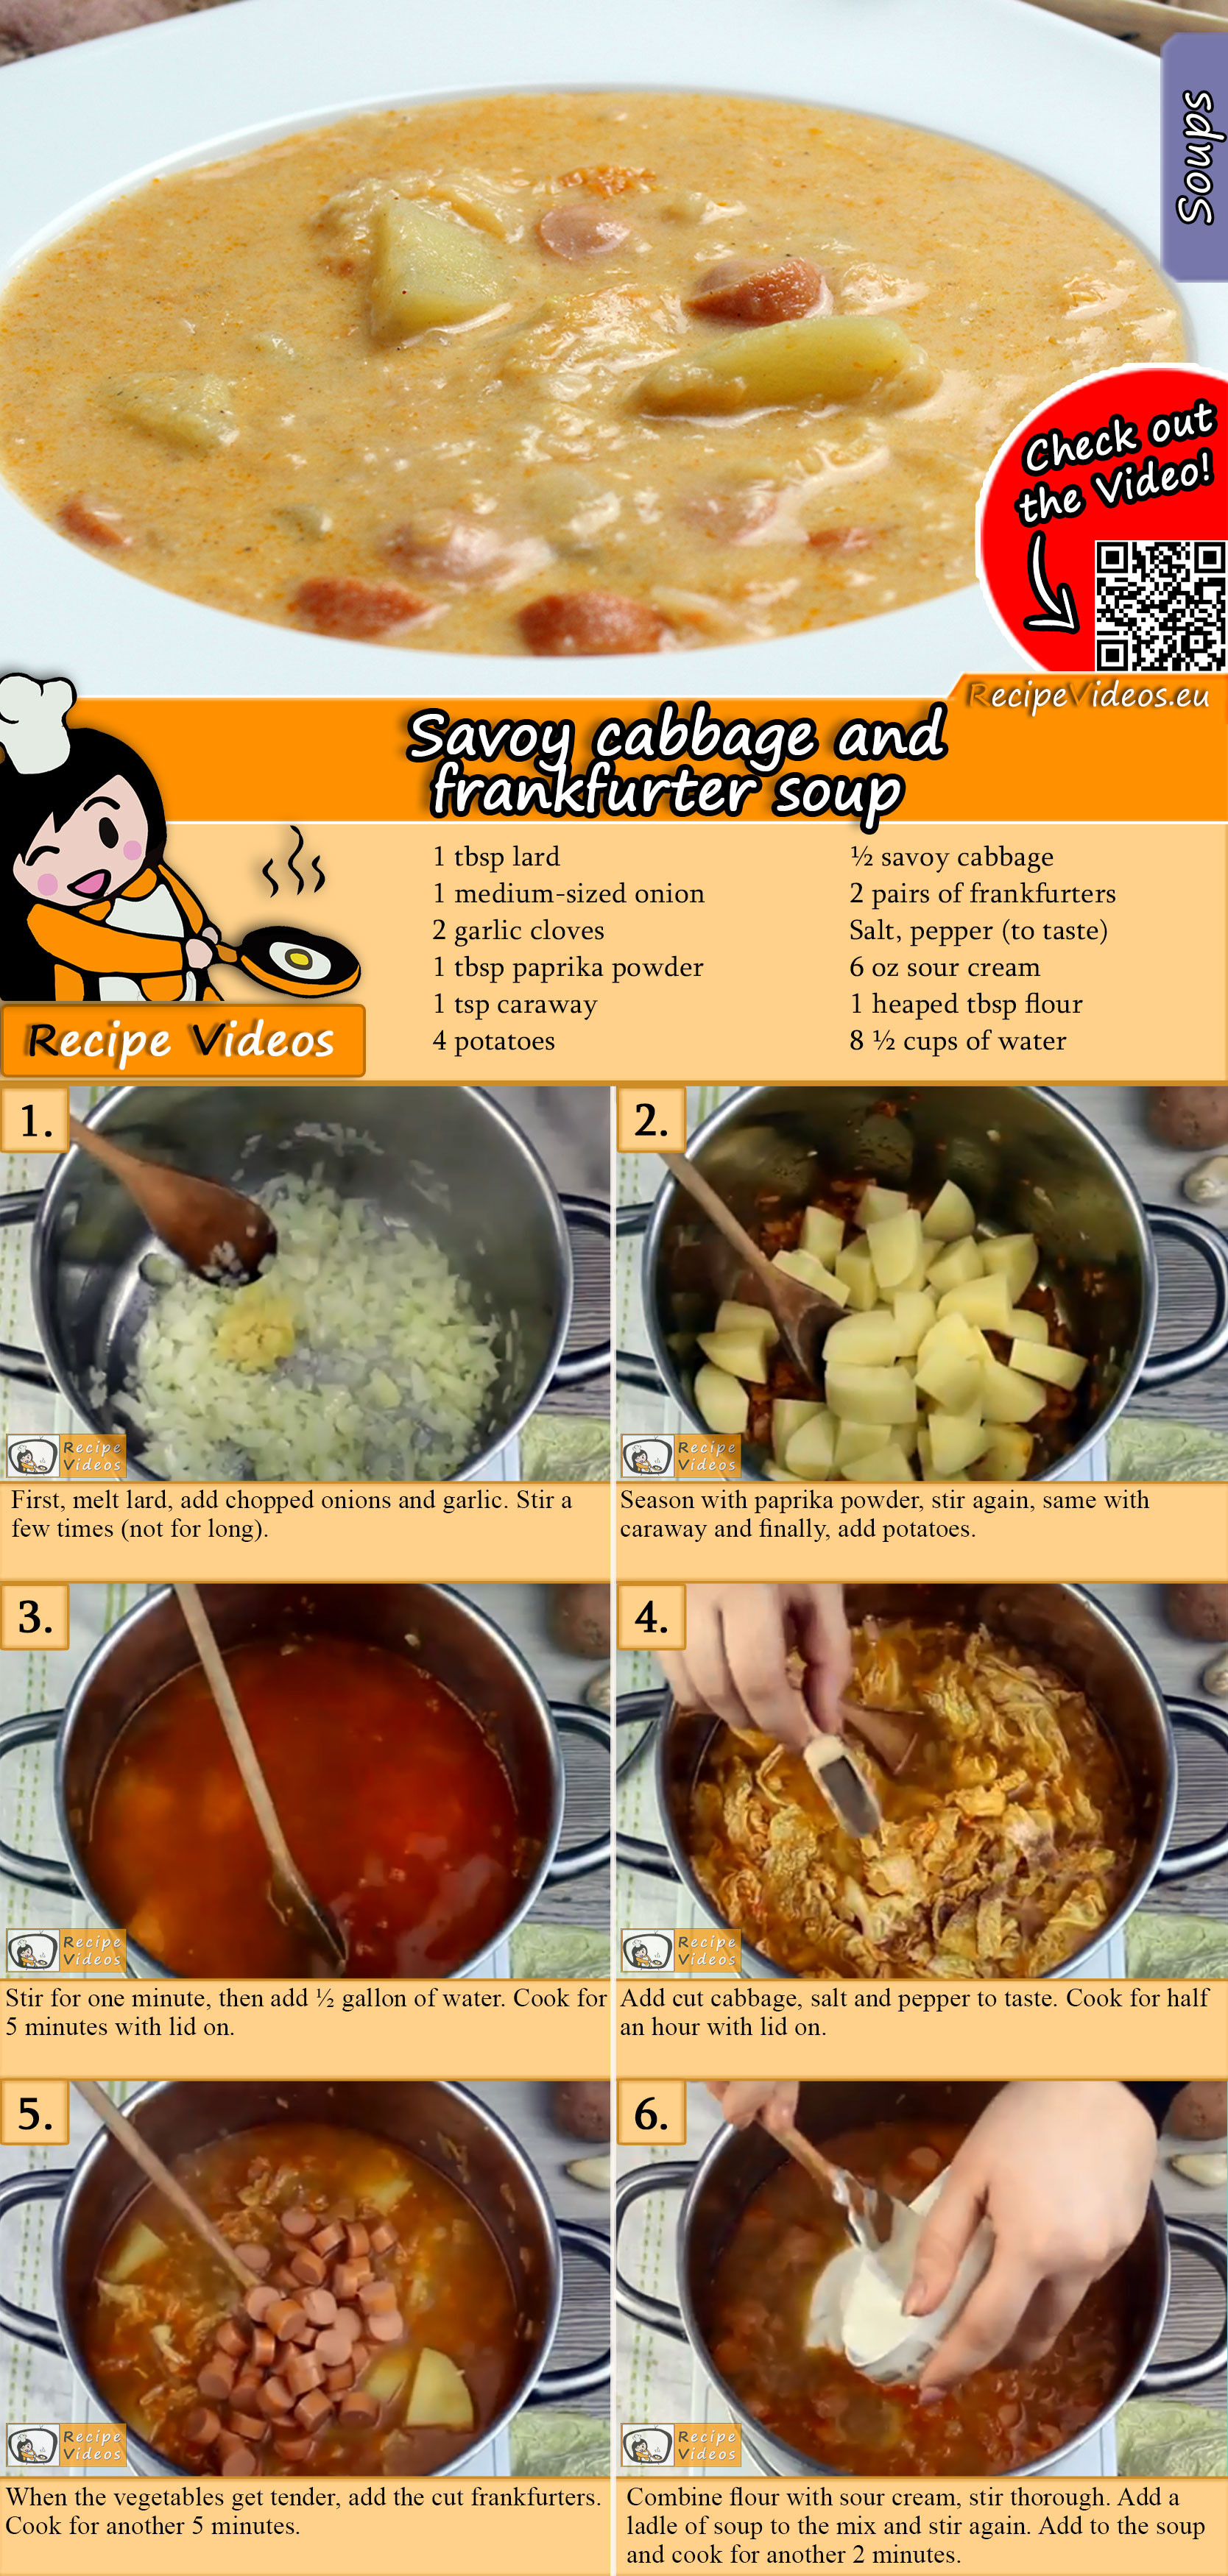 Savoy cabbage and frankfurter soup recipe with video